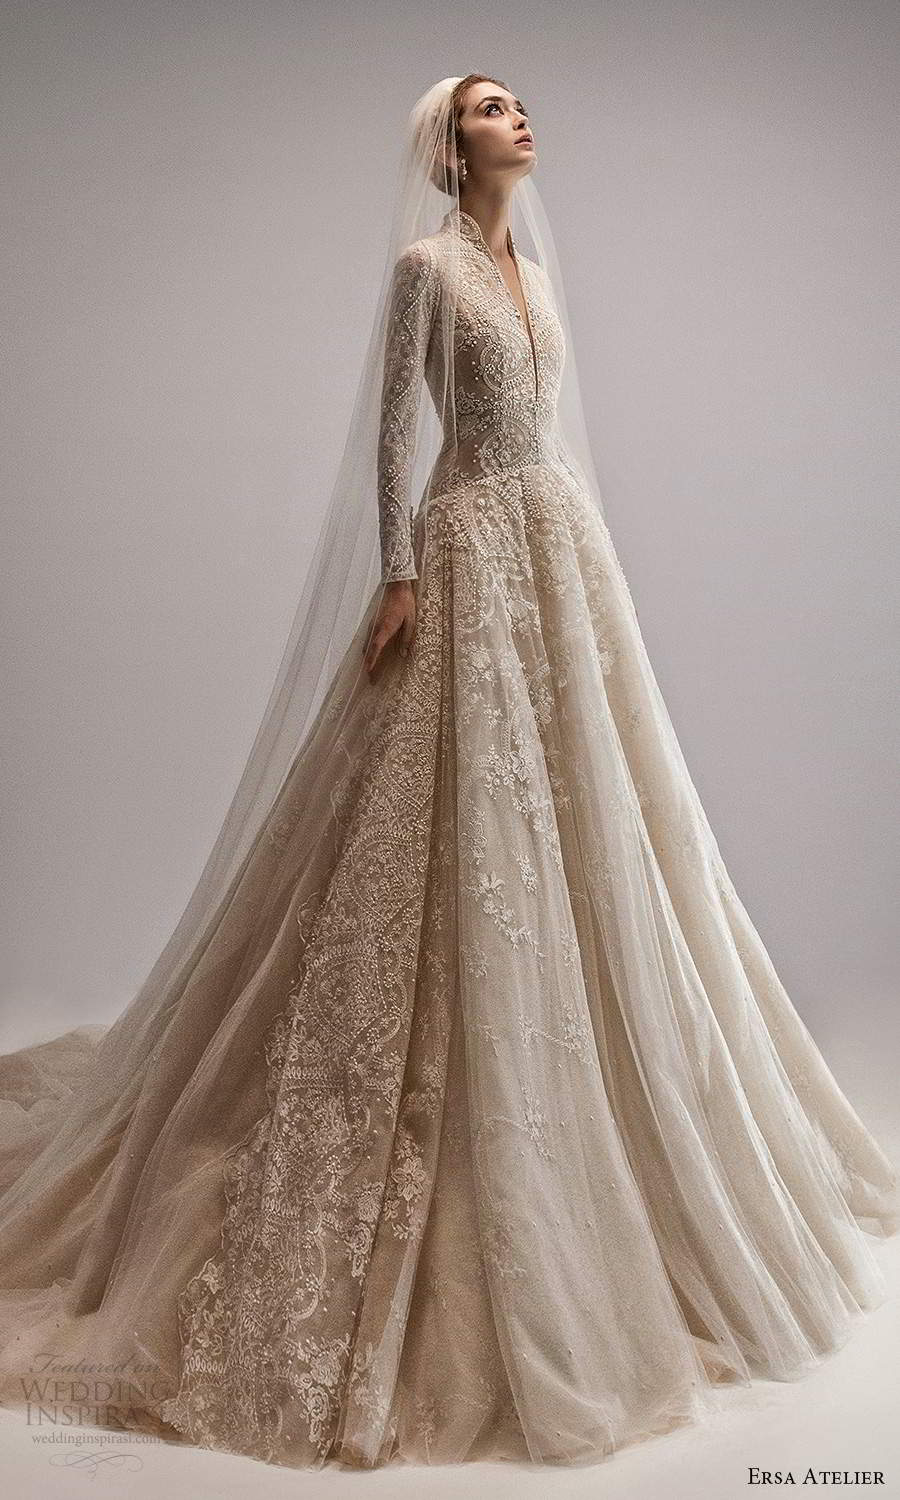 ersa atelier spring 2021 bridal long sleeves high v neckline fully embellished drop waist a line ball gown wedding dress chapel train (11) mv